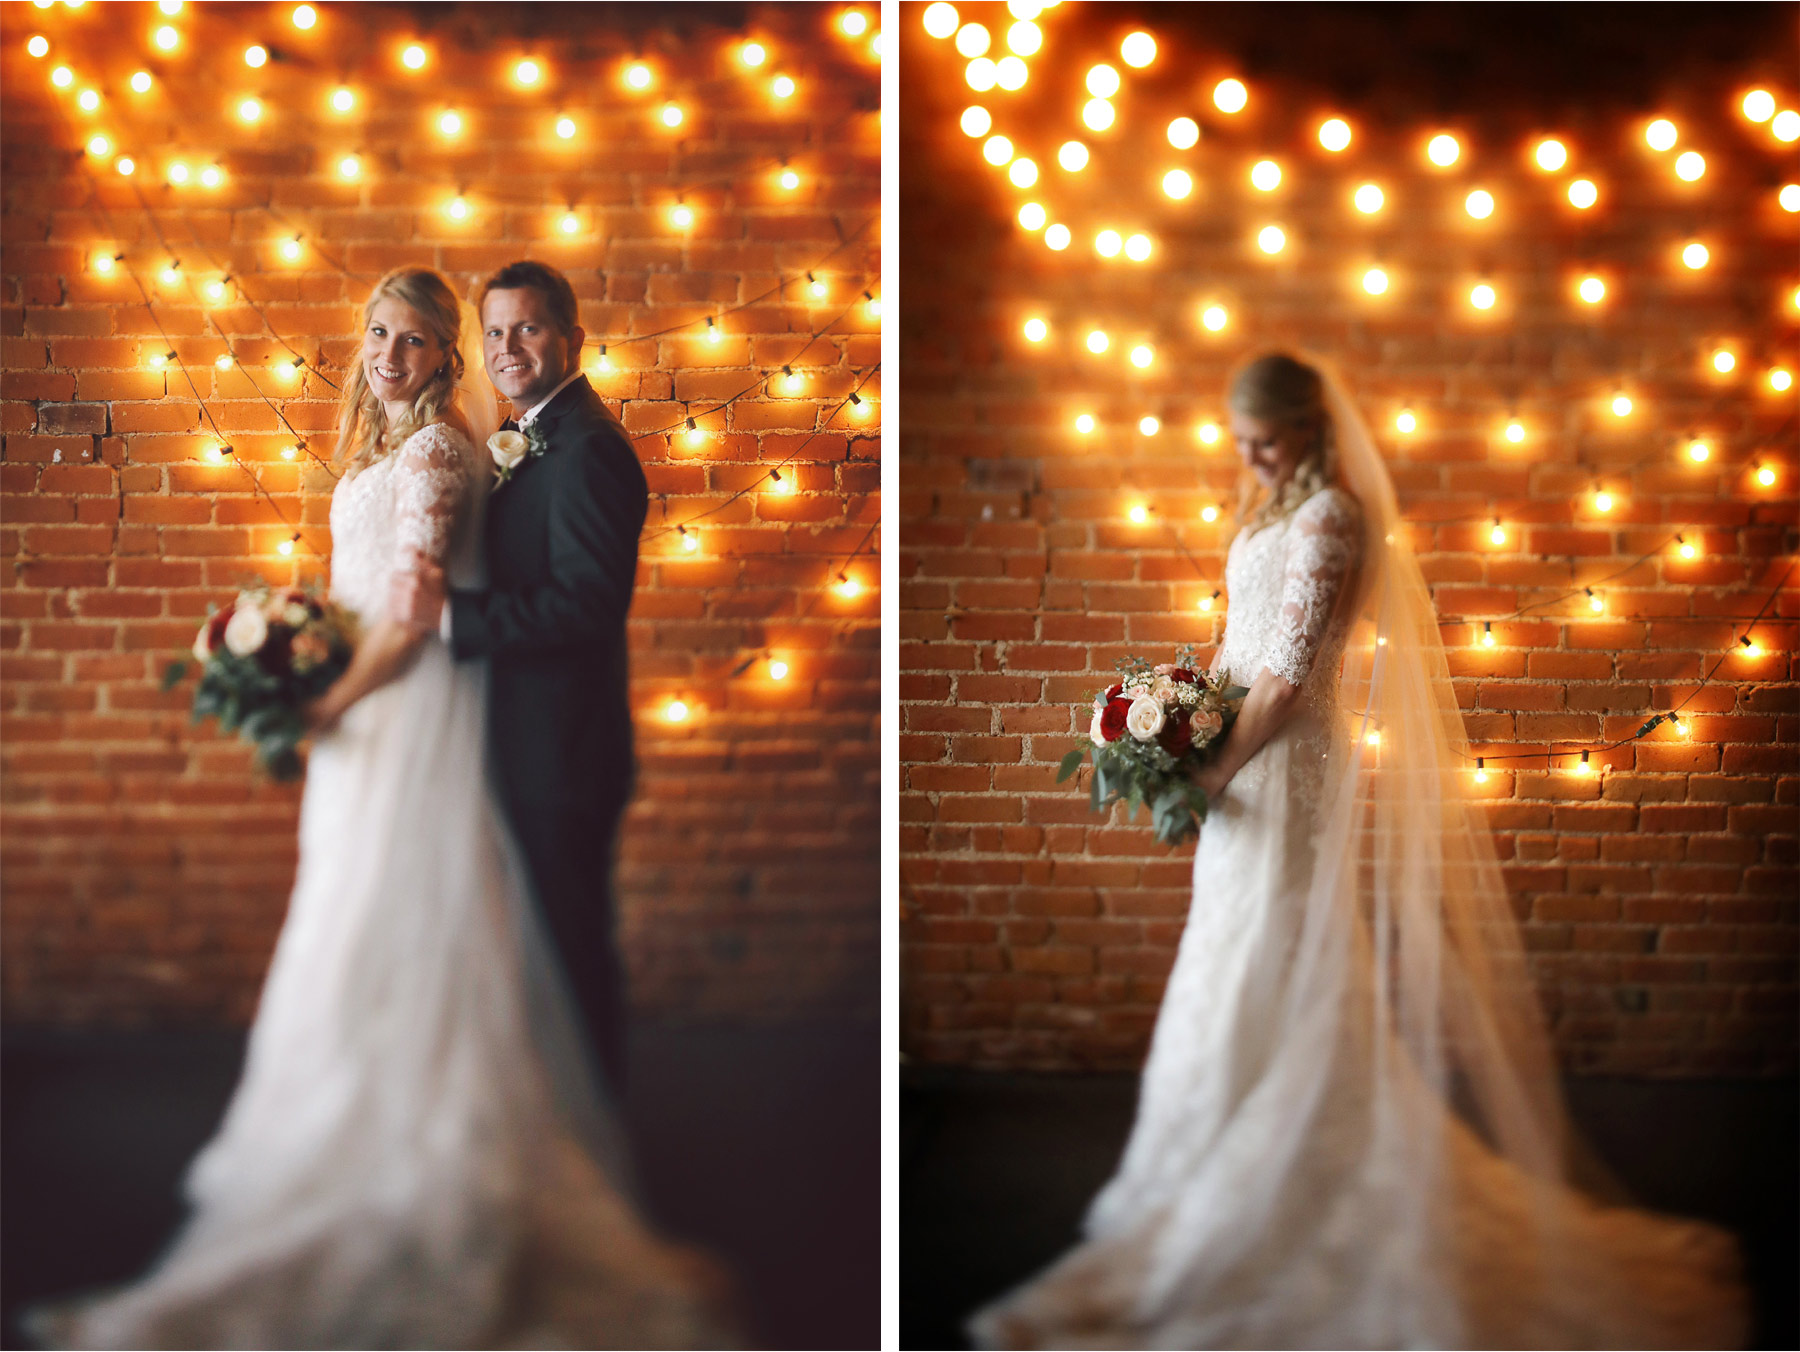 13-Shakopee-Minnesota-Wedding-Photography-by-Vick-Photography-Turtles-1890-Social-Centre-Bride-and-Groom-Amber-and-Justin.jpg